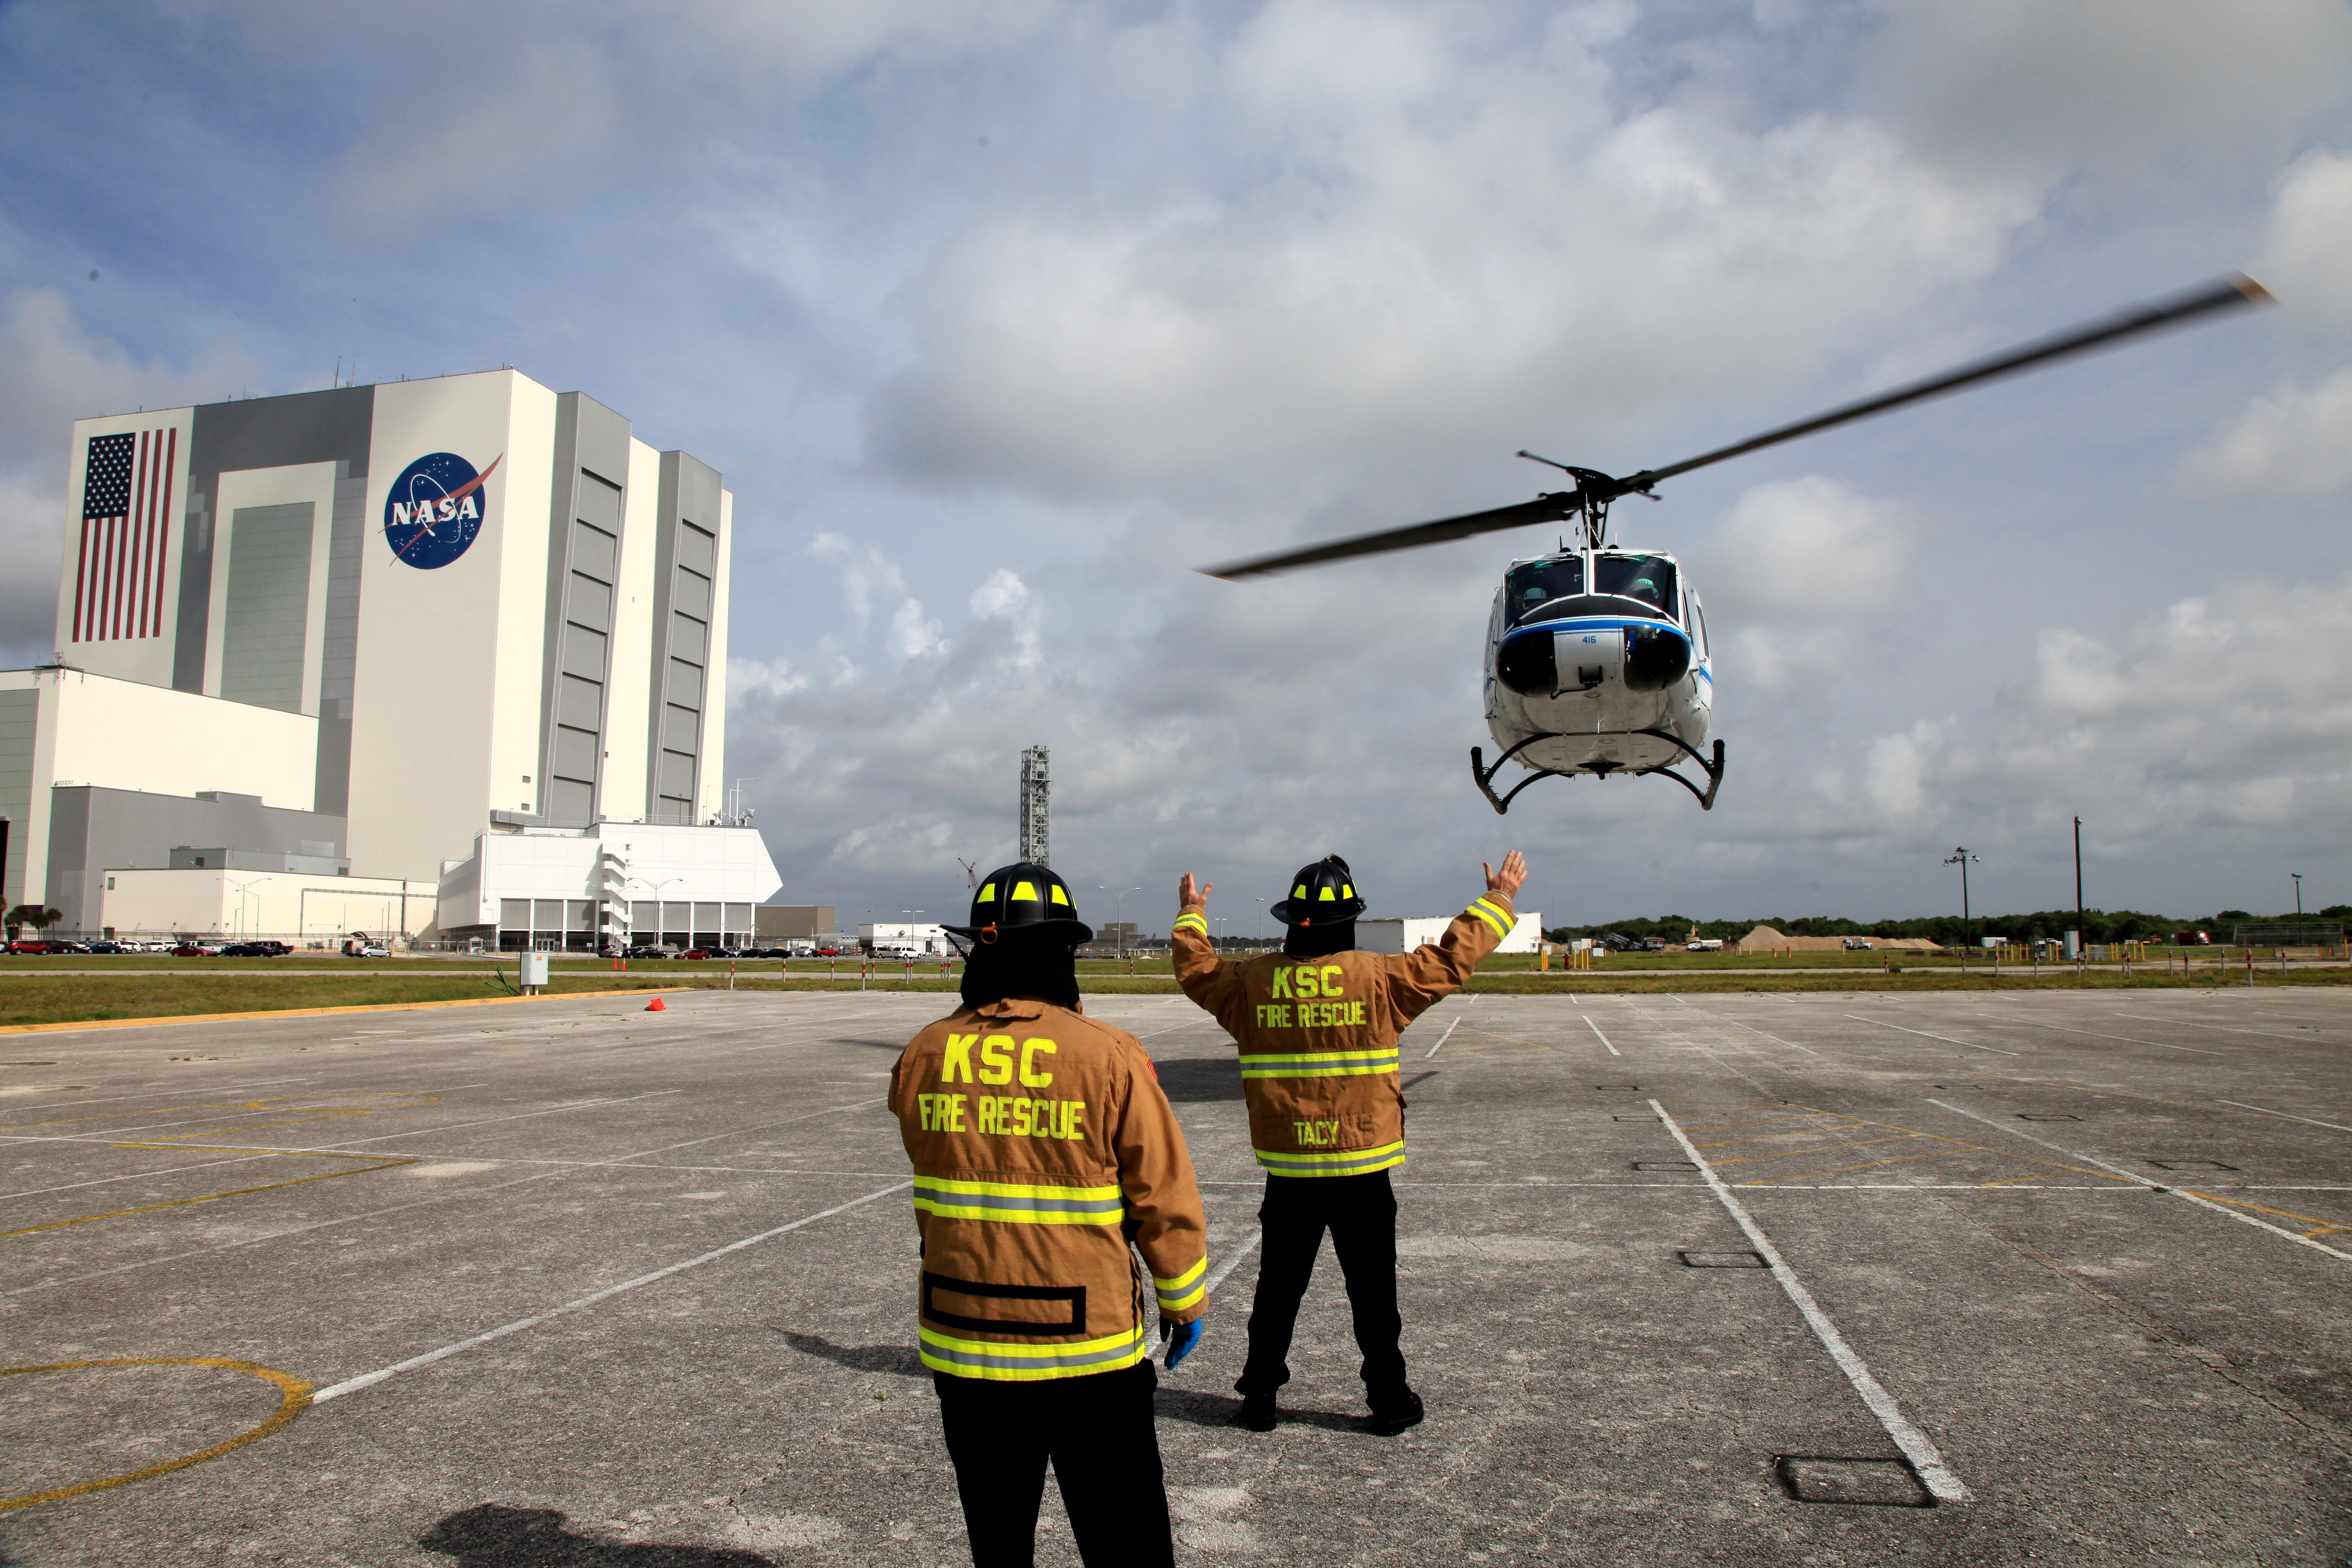 helicopter training video with Nasa Fire Rescue Training Focuses On Safe Helicopter Evacuations on Trainingcenterpics additionally 205 additionally Index9548 as well  moreover Open photo.